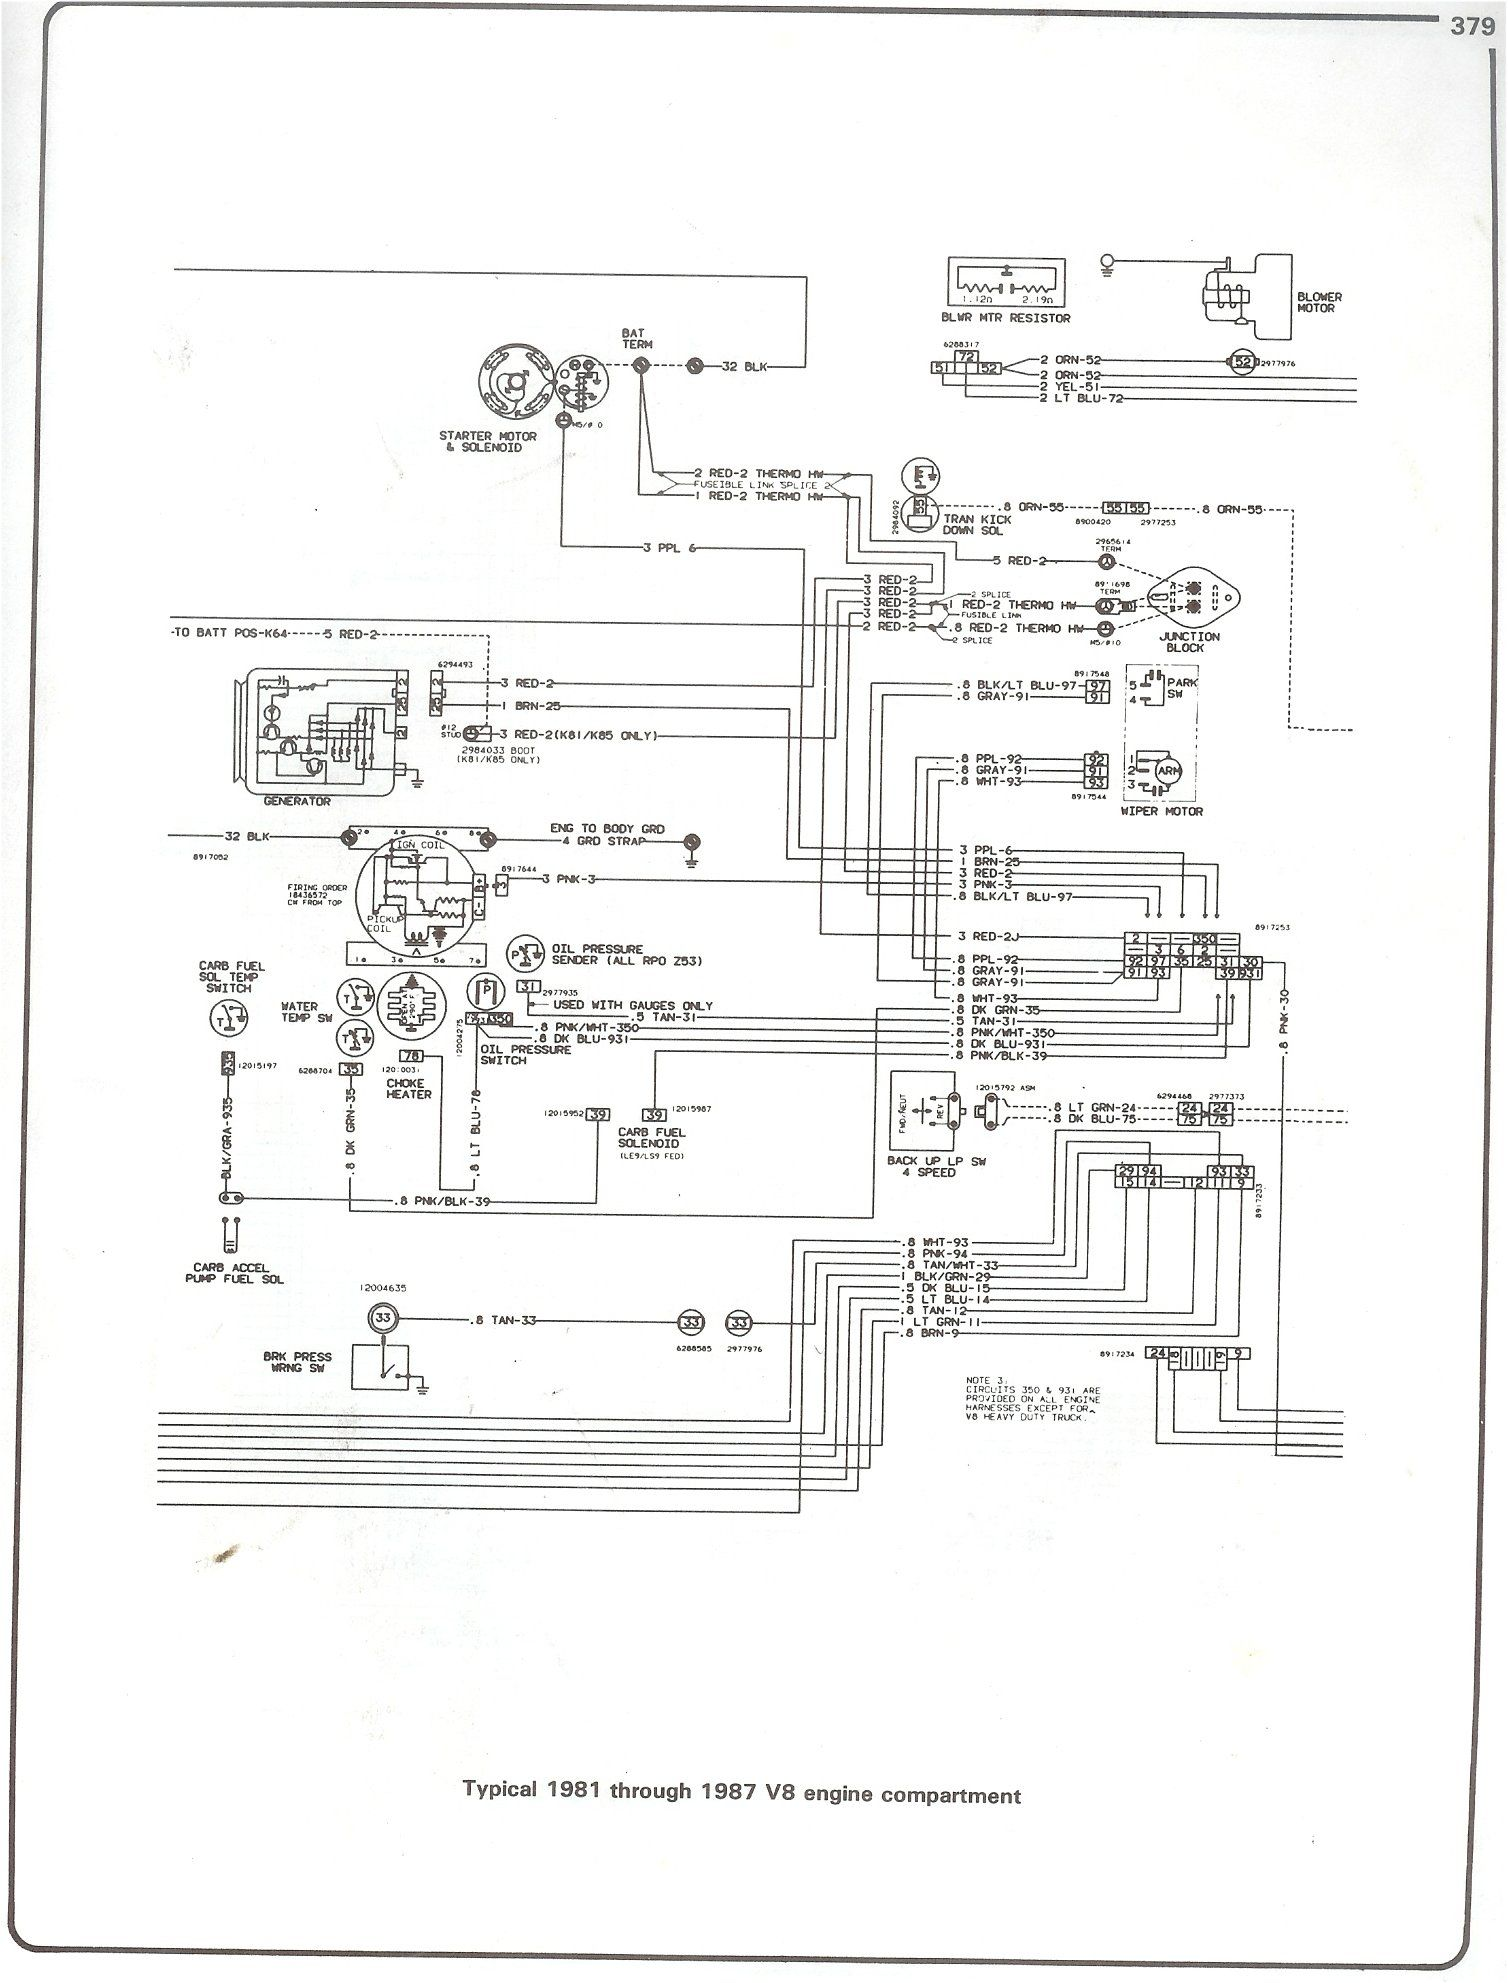 73 Gmc Wiring Harness The Portal And Forum Of Diagram 2006 Sierra Trailer 85 Chevy Truck Engine Third Level Rh 7 1 16 Jacobwinterstein Com Diagrams